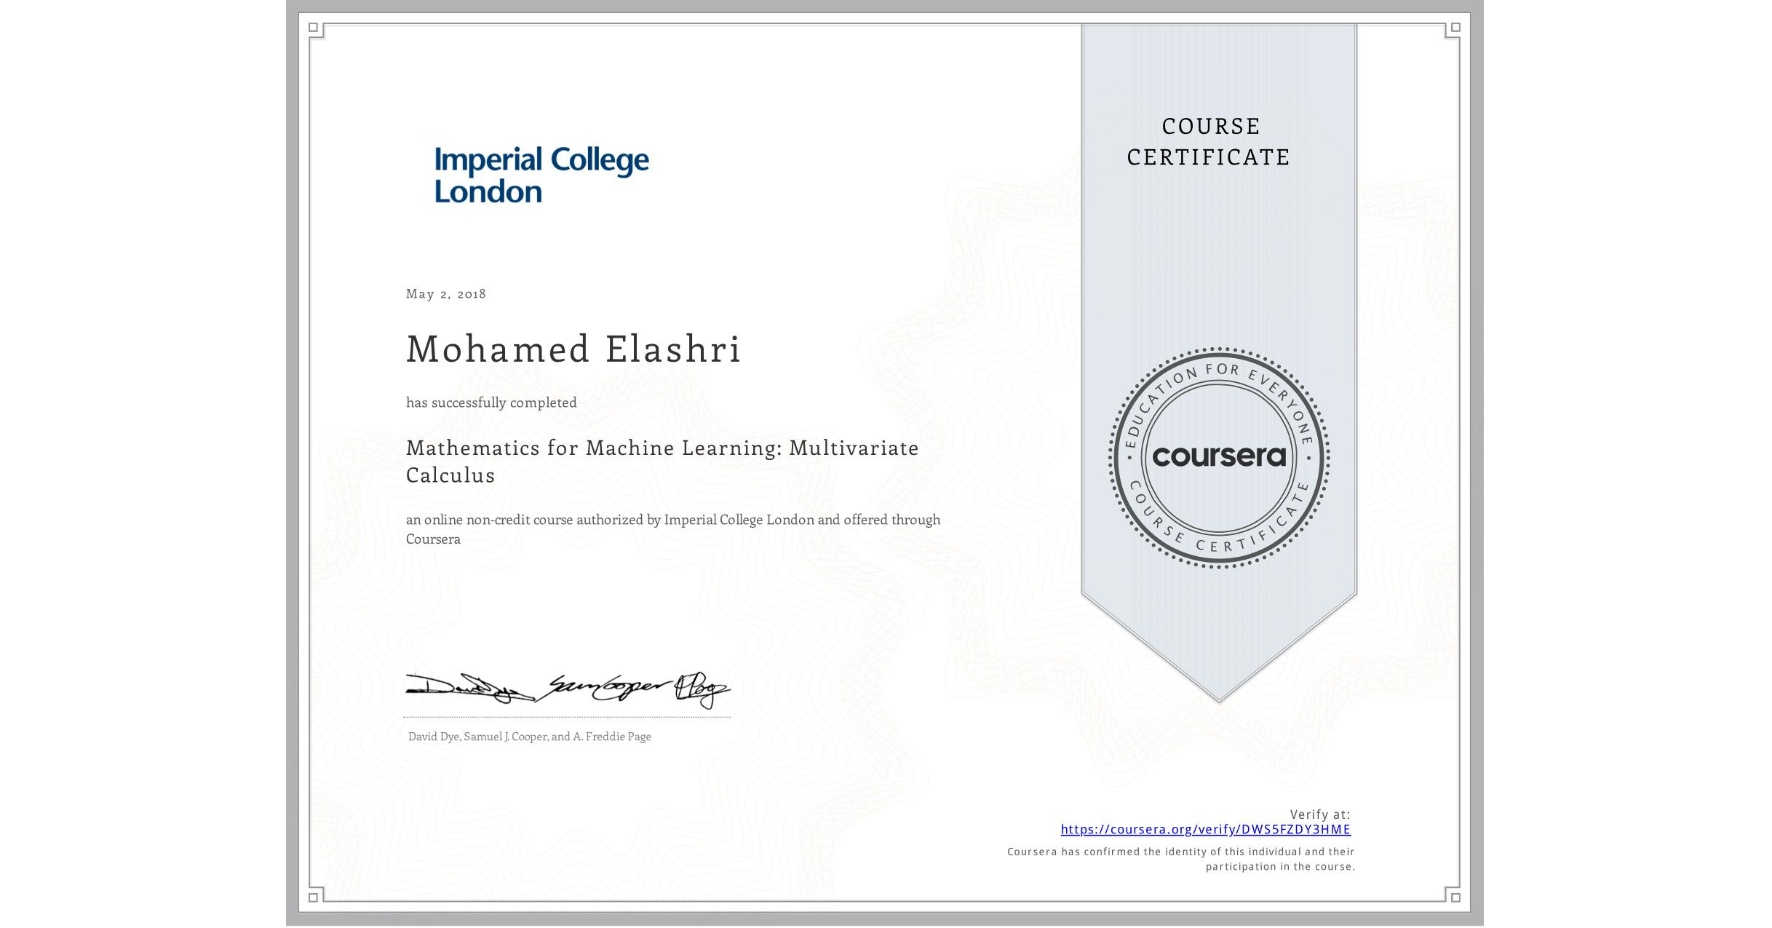 View certificate for Mohamed Elashri, Mathematics for Machine Learning: Multivariate Calculus, an online non-credit course authorized by Imperial College London and offered through Coursera